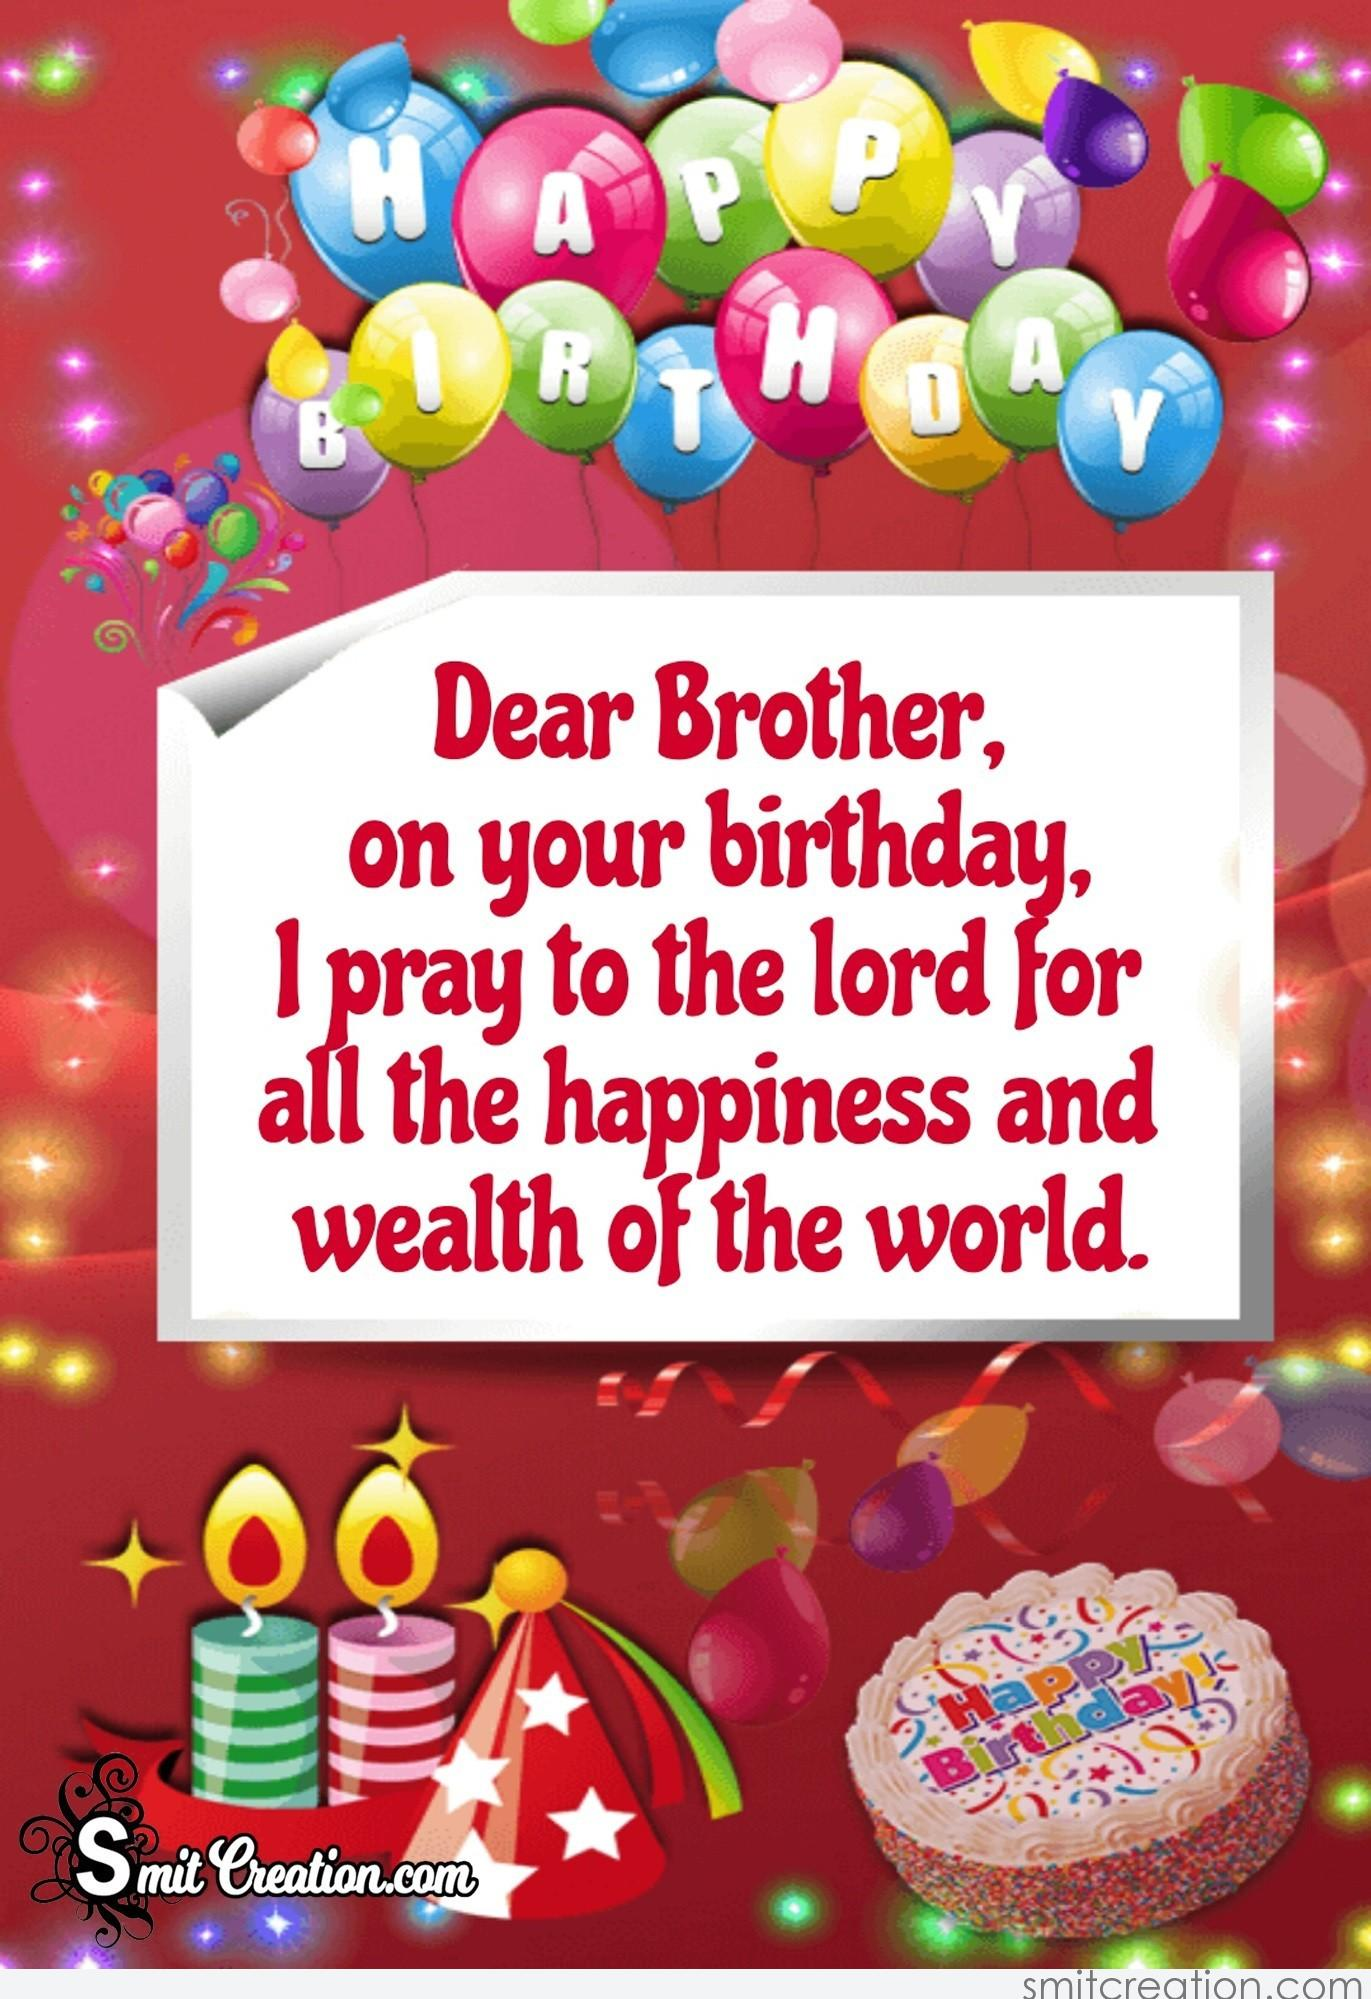 Images Of Happy Birthday Brother : images, happy, birthday, brother, Happy, Birthday, Brother, SmitCreation.com